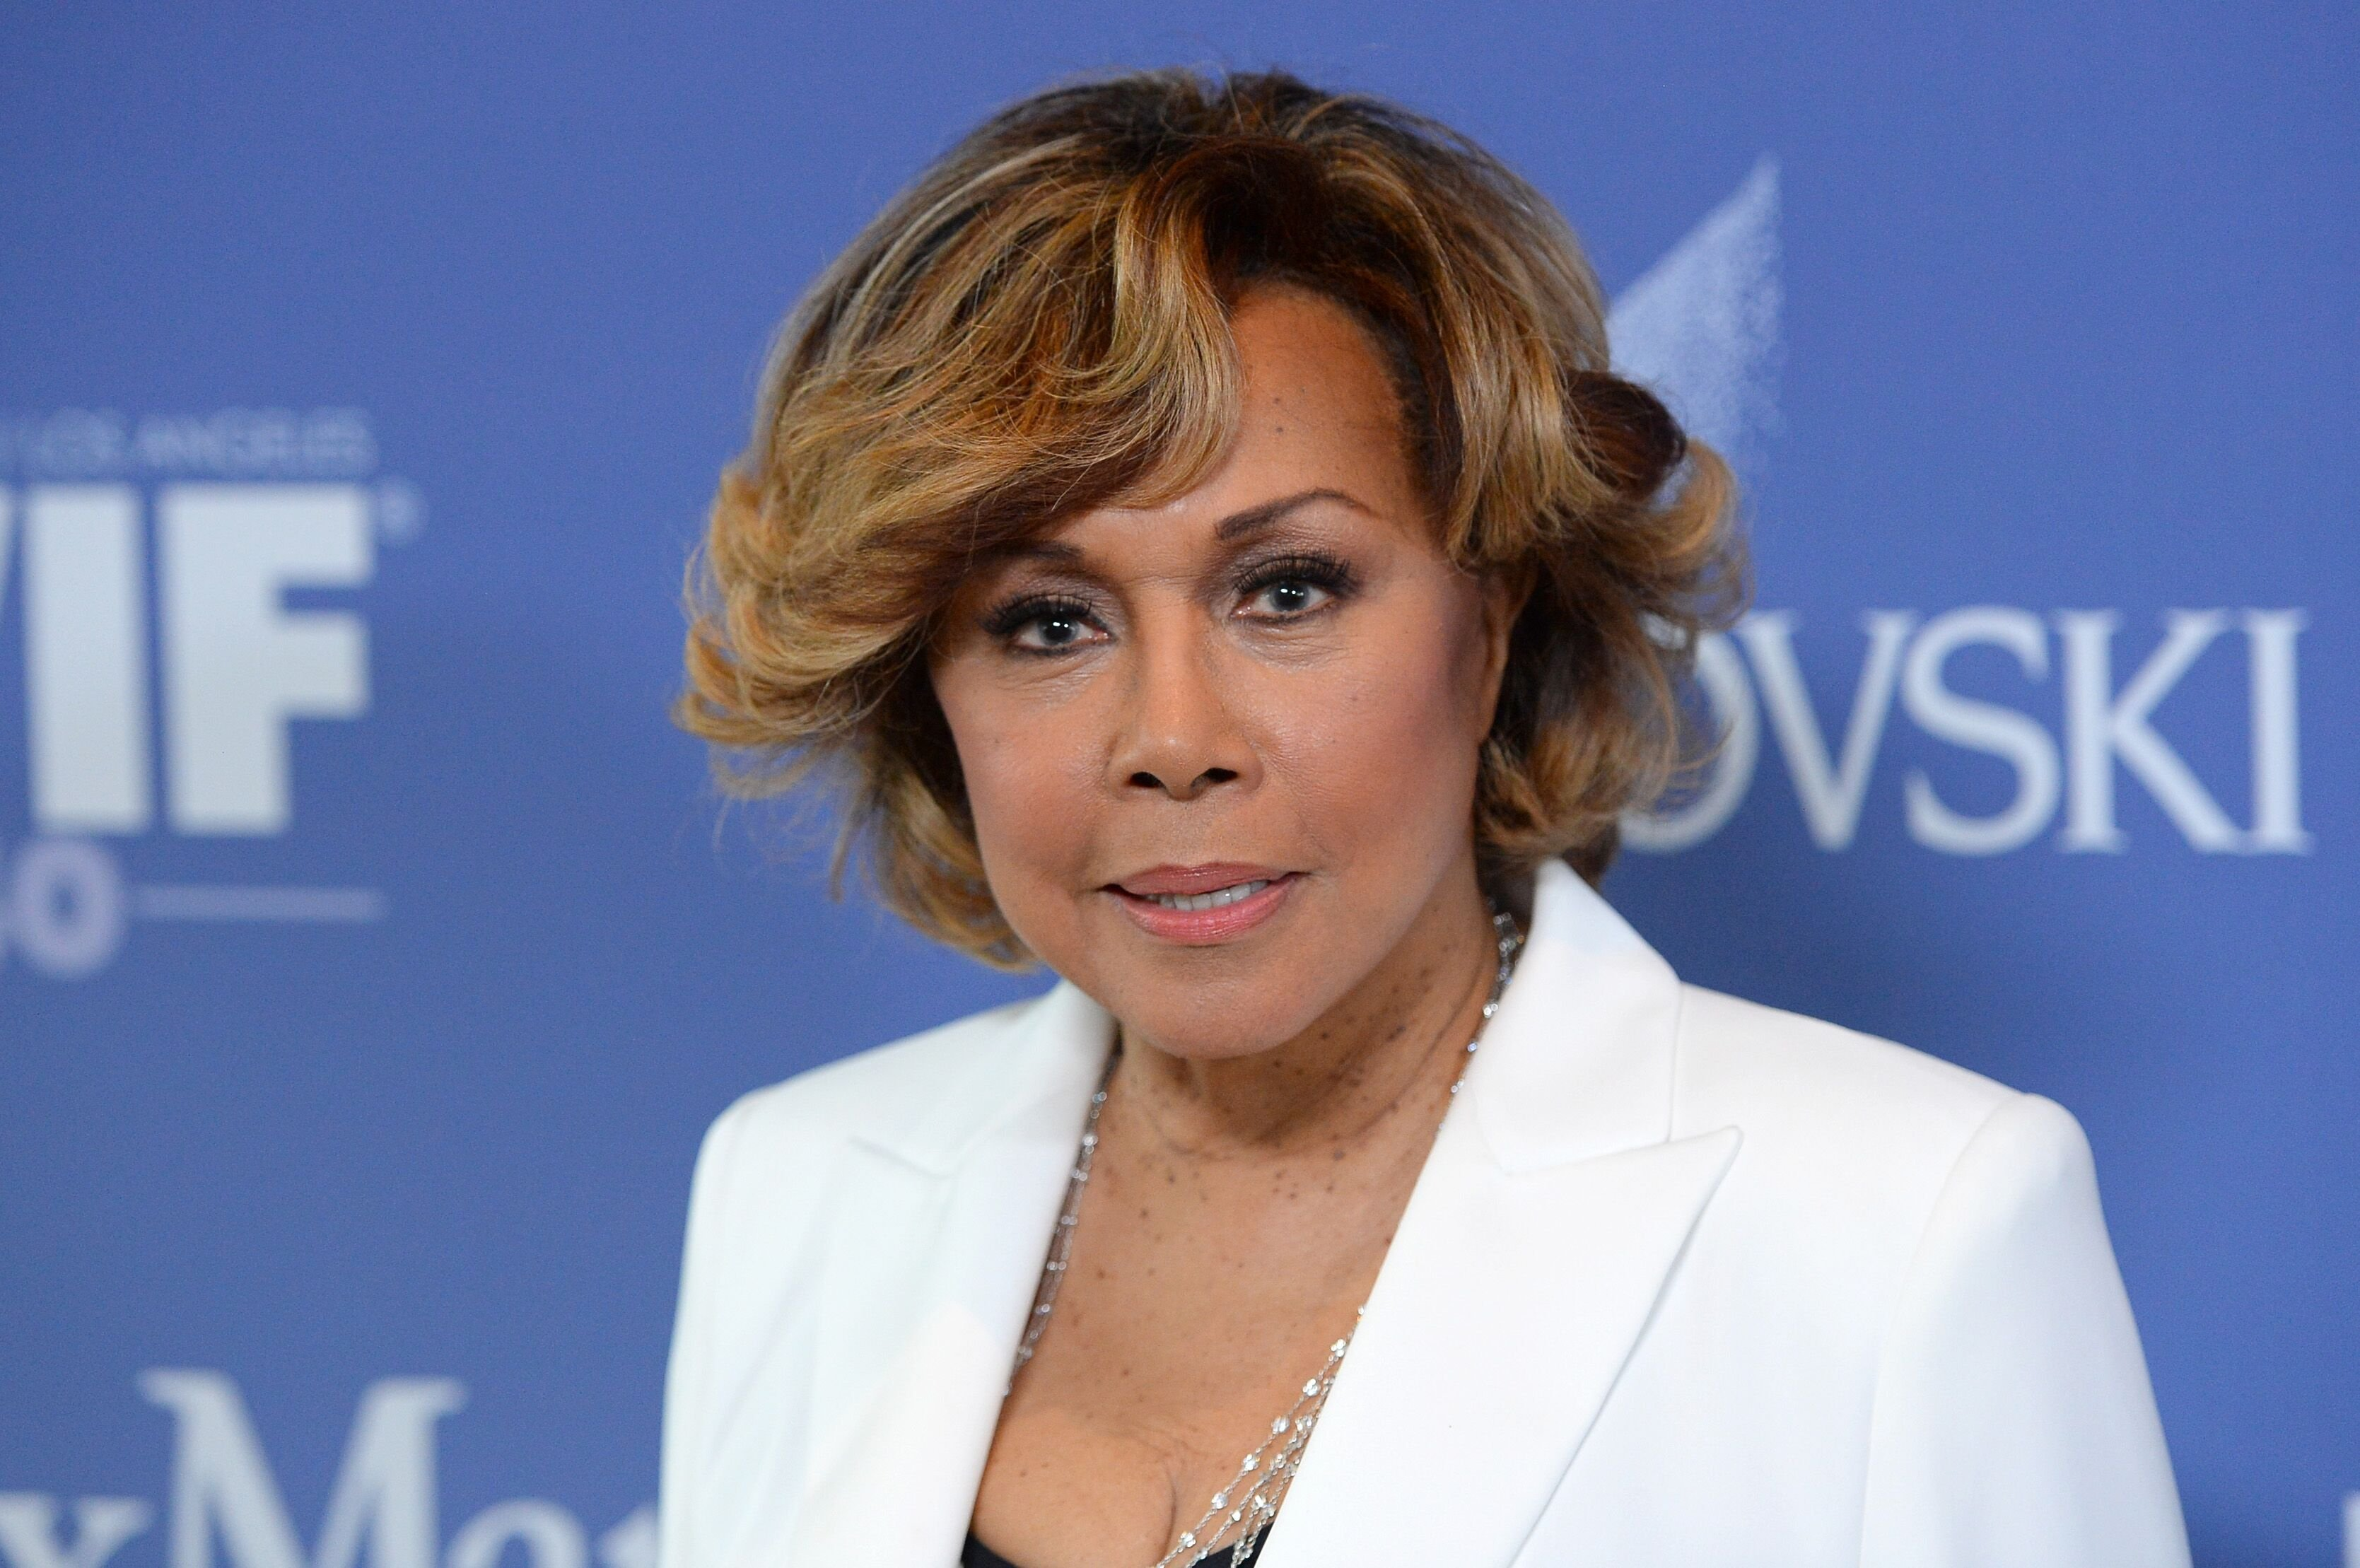 Diahann Carroll at the Women In Film's 2013 Crystal + Lucy Awards on June 12, 2013 in Beverly Hills, California | Photo: Getty Images